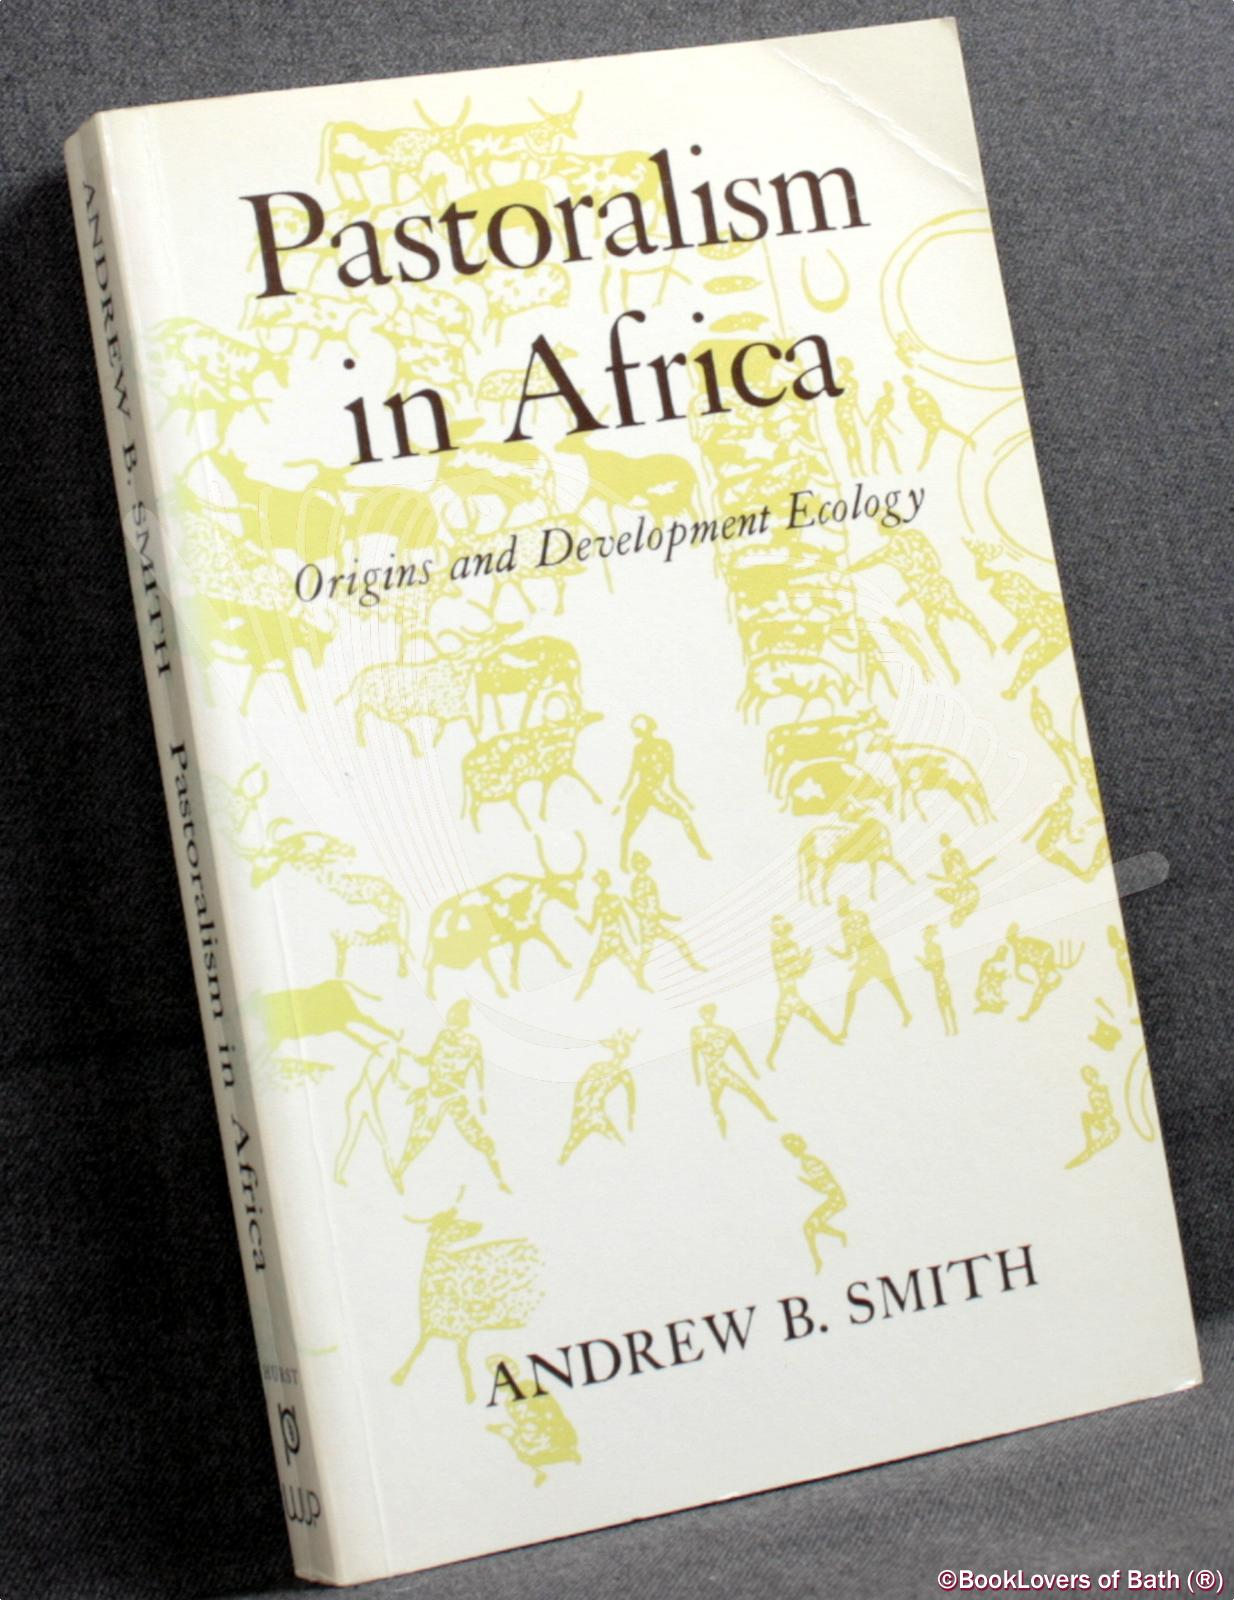 Pastoralism in Africa: Origins and Development Ecology - Andrew B. Smith